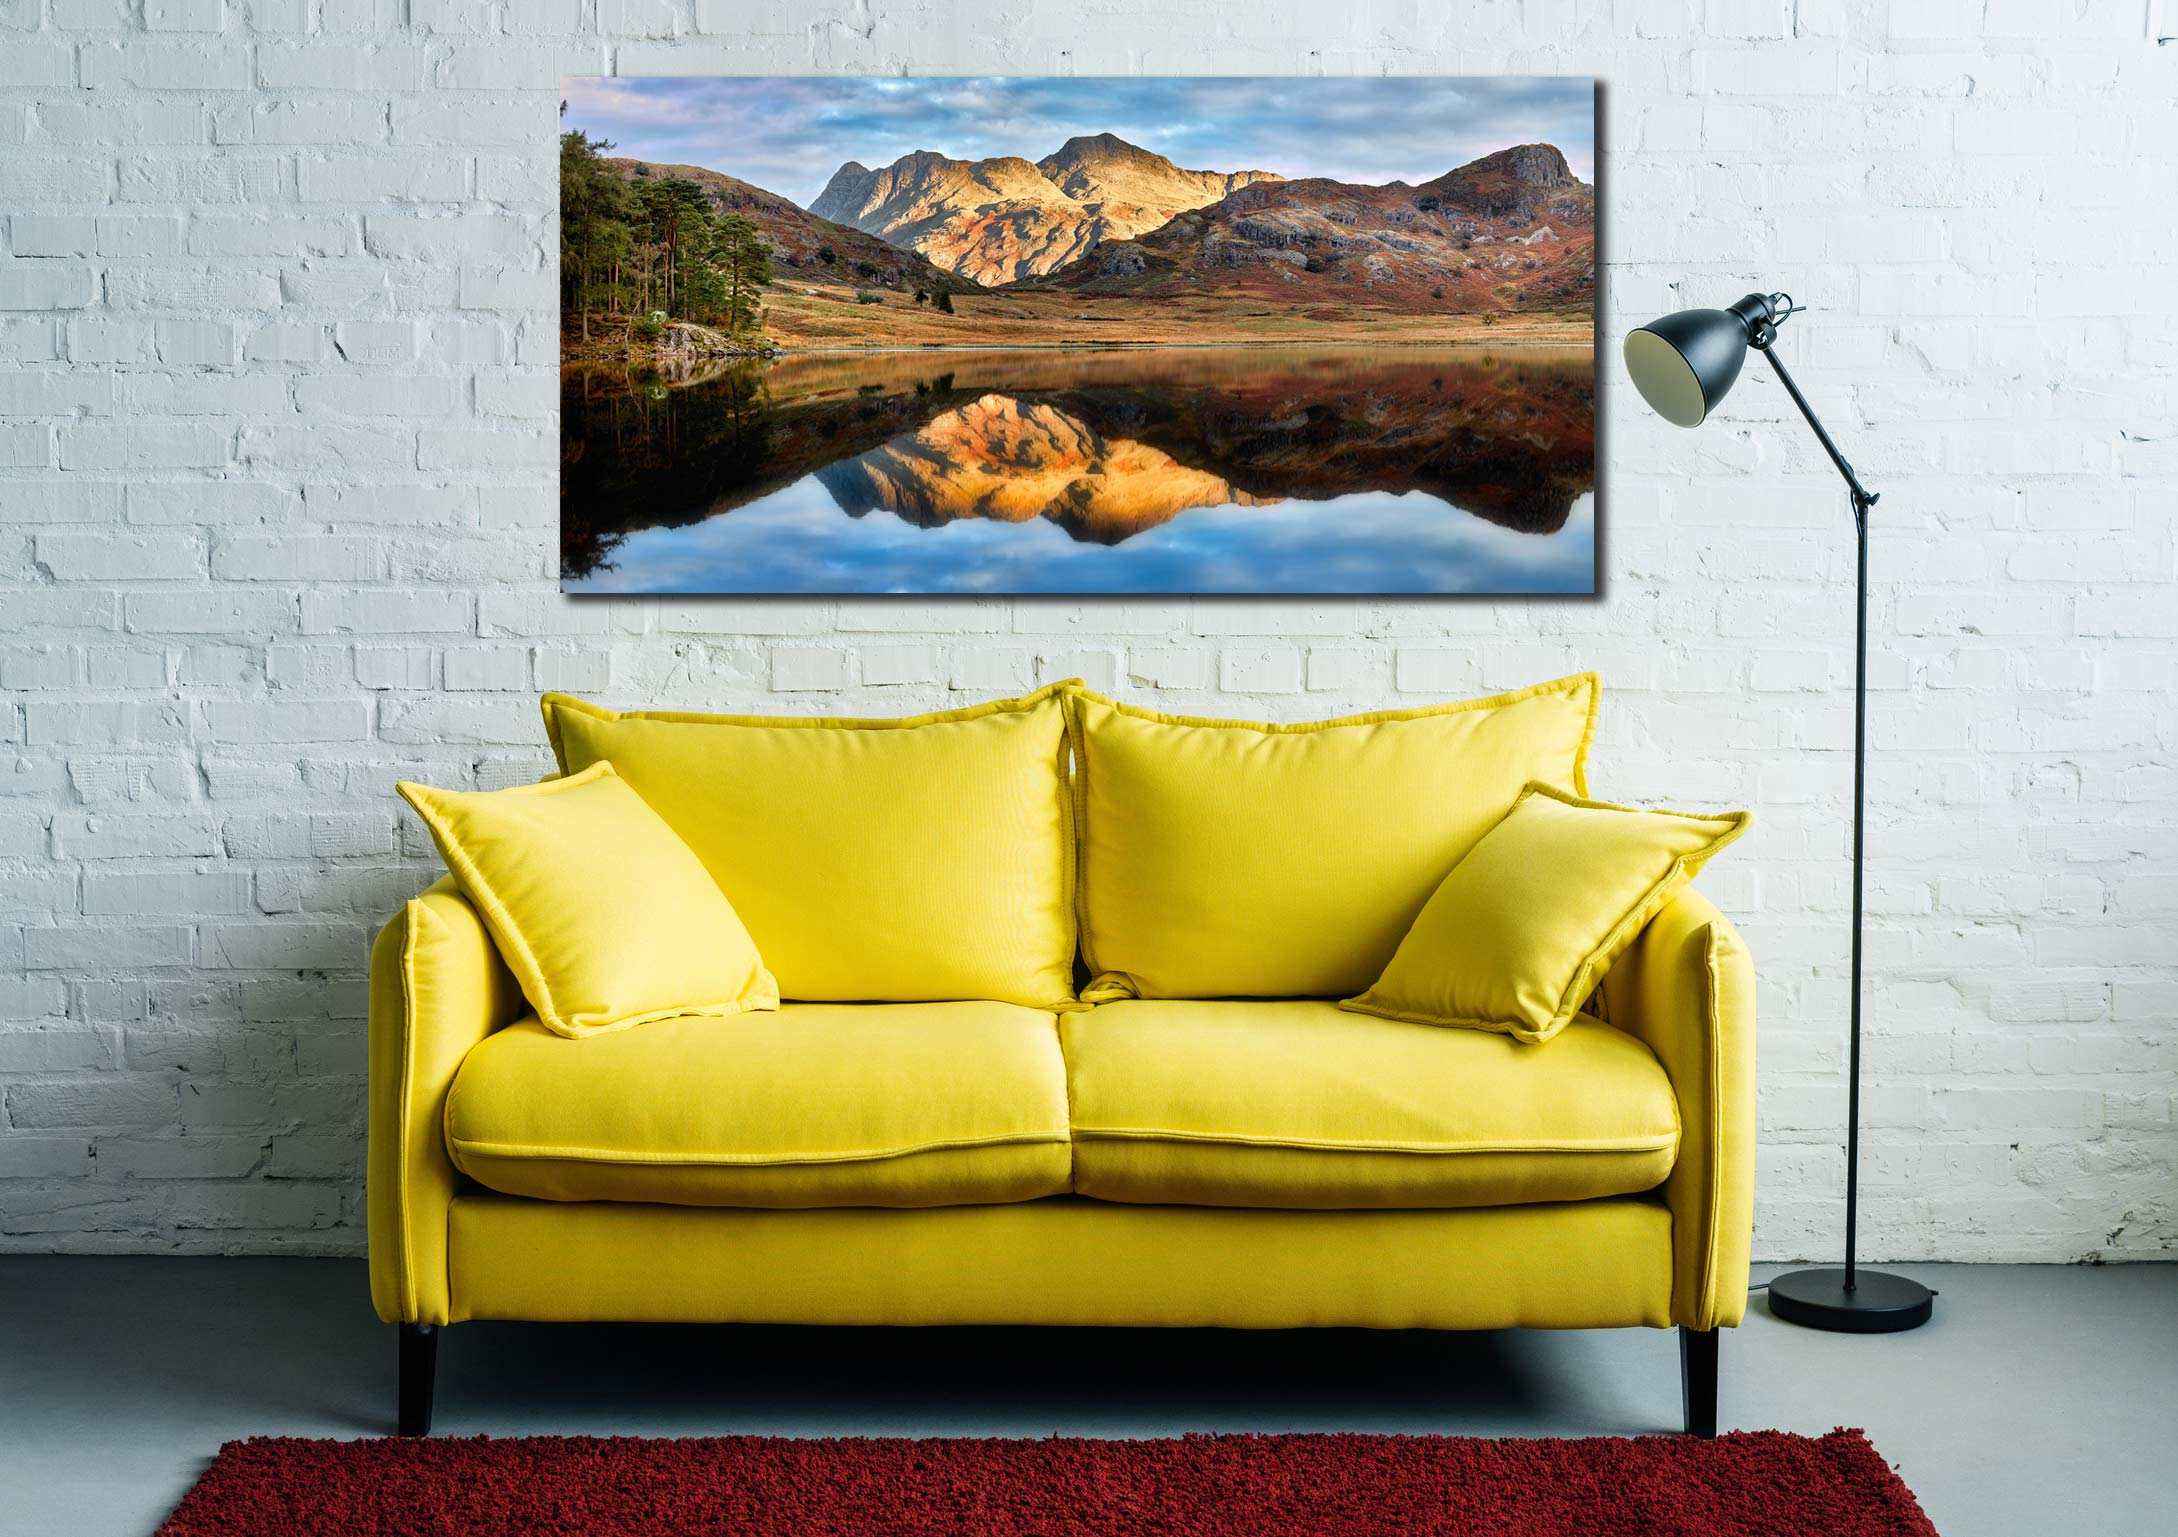 Blea Tarn and Langdale Pikes - Print Aluminium Backing With Acrylic Glazing on Wall